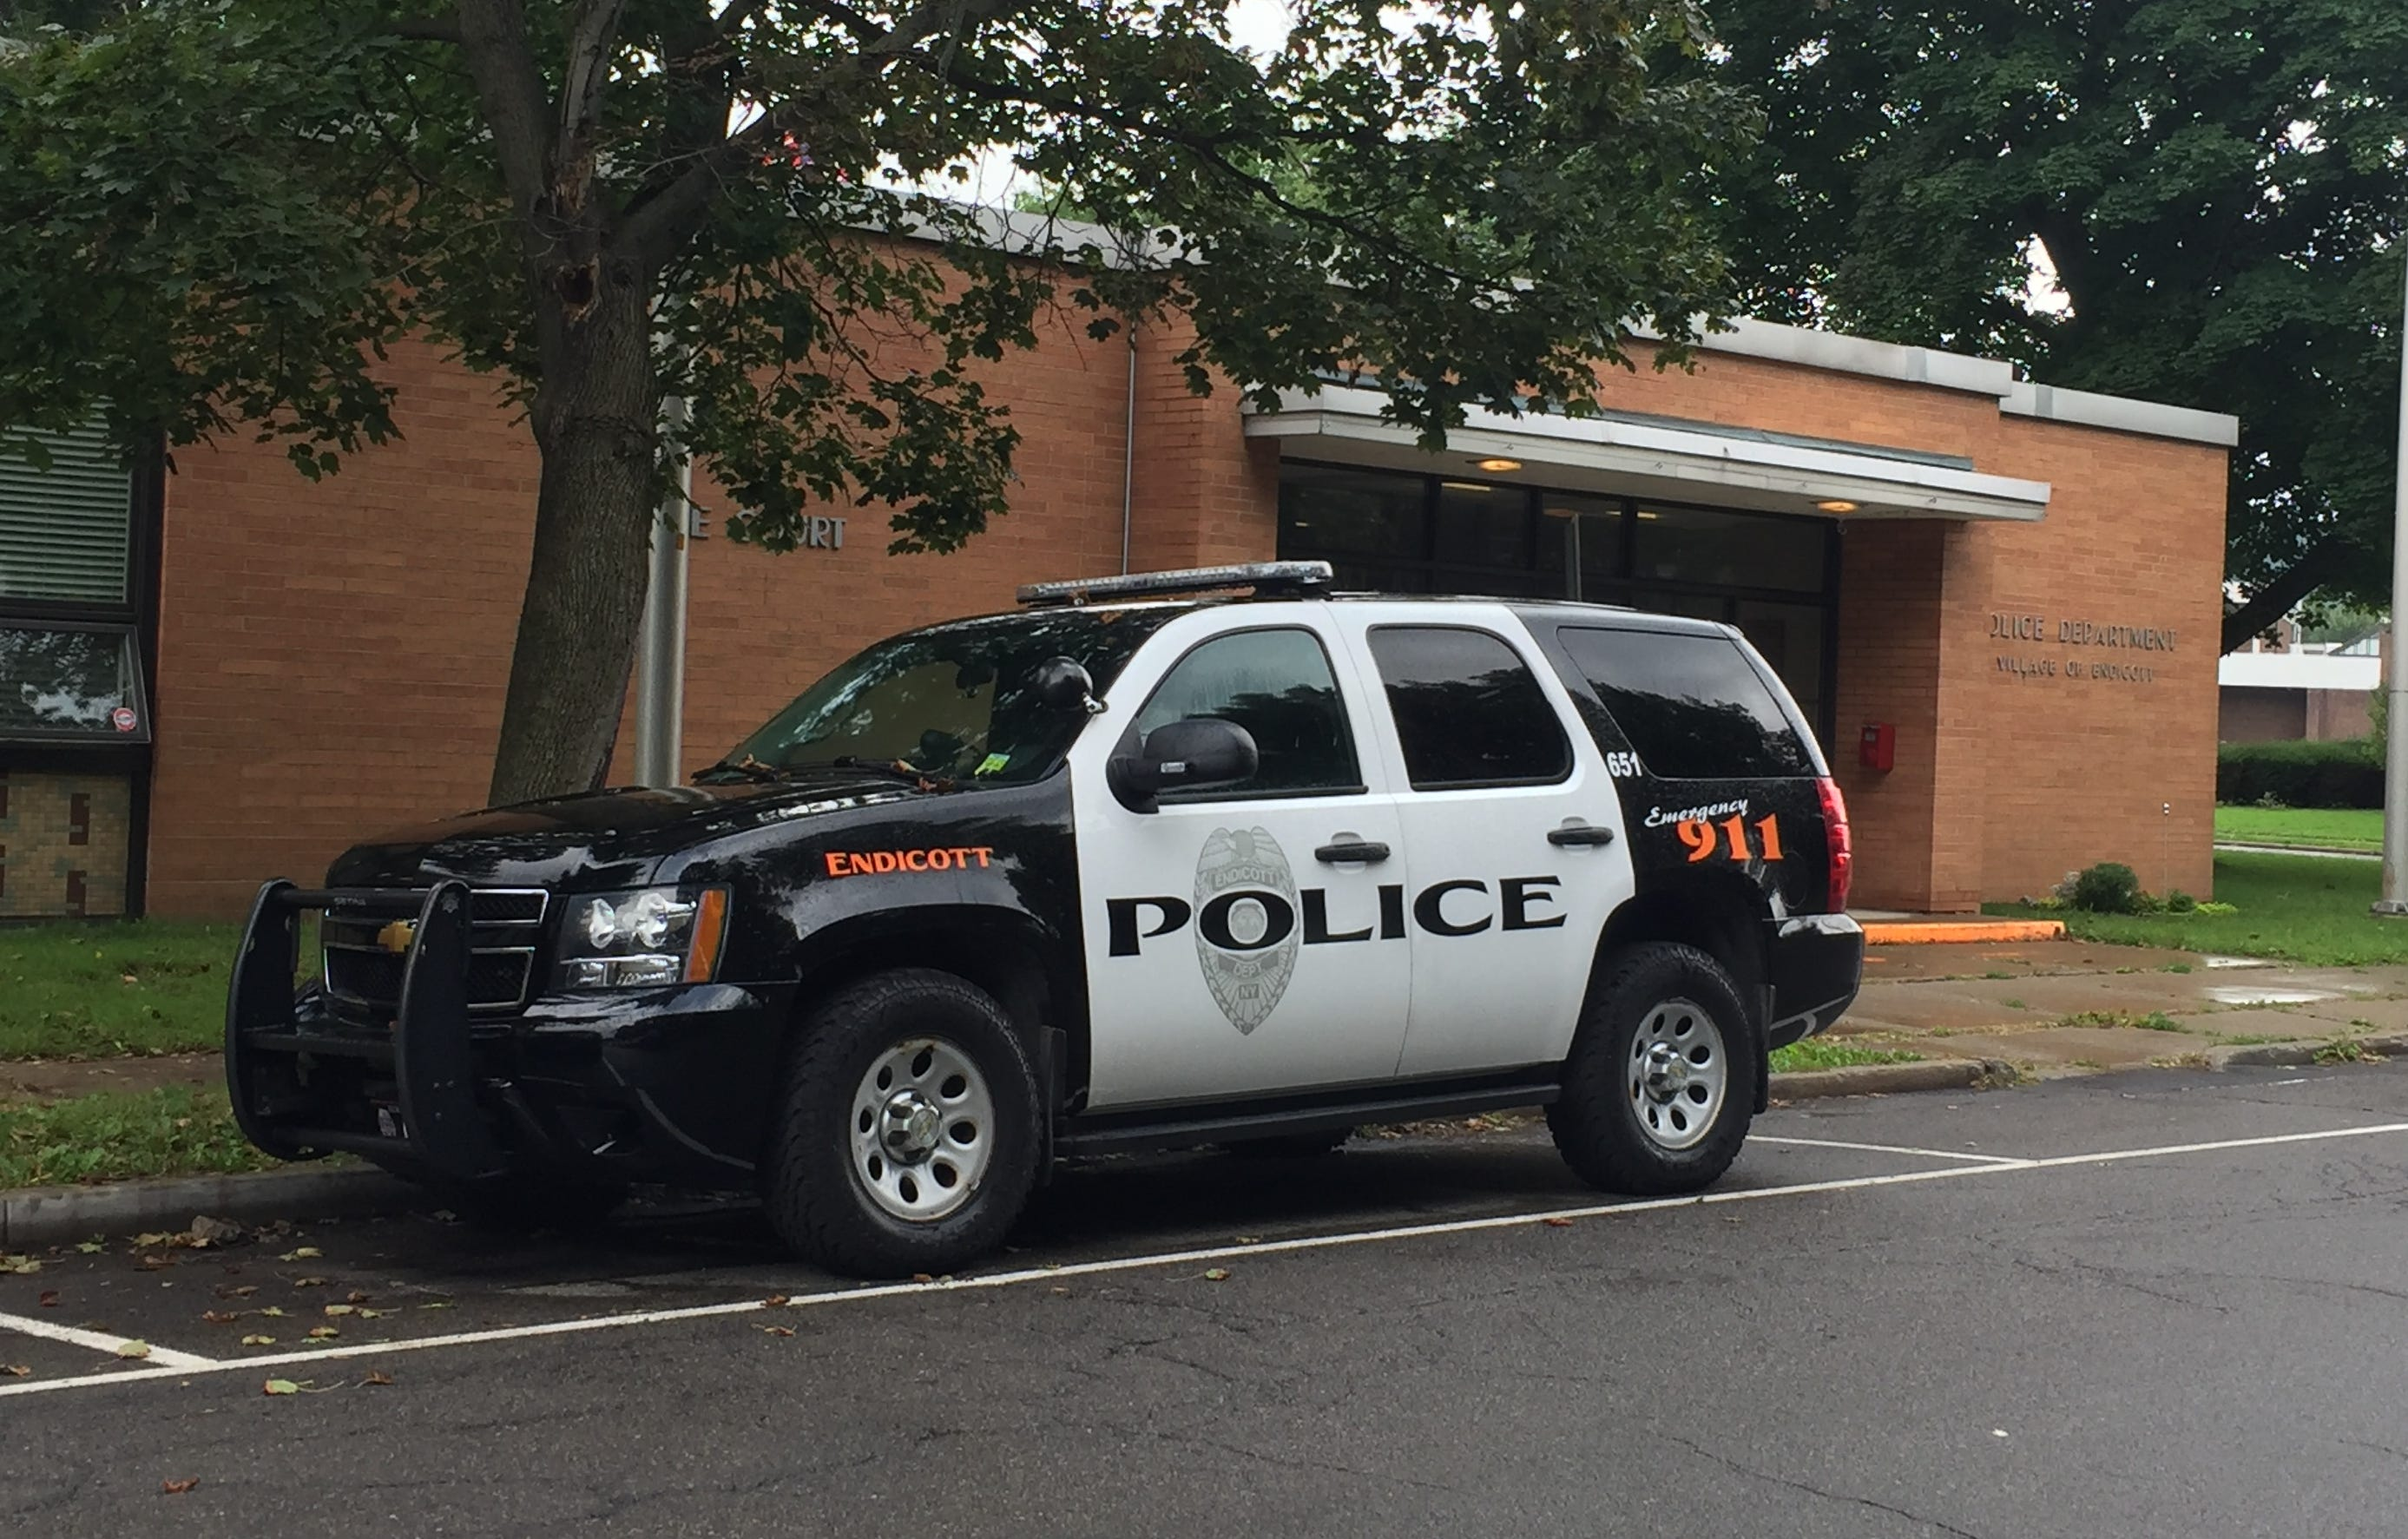 An Endicott police vehicle outside the police station.